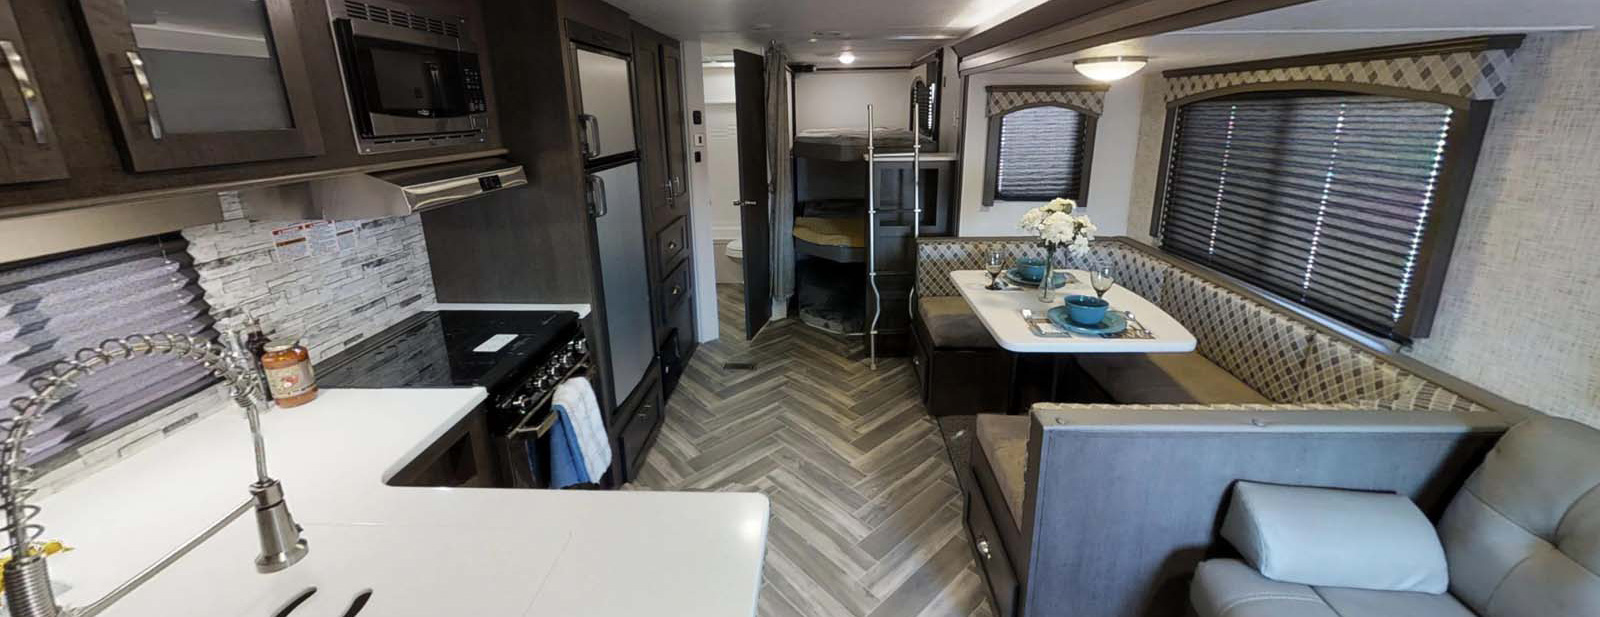 Evo Forest River Rv Manufacturer Of Travel Trailers